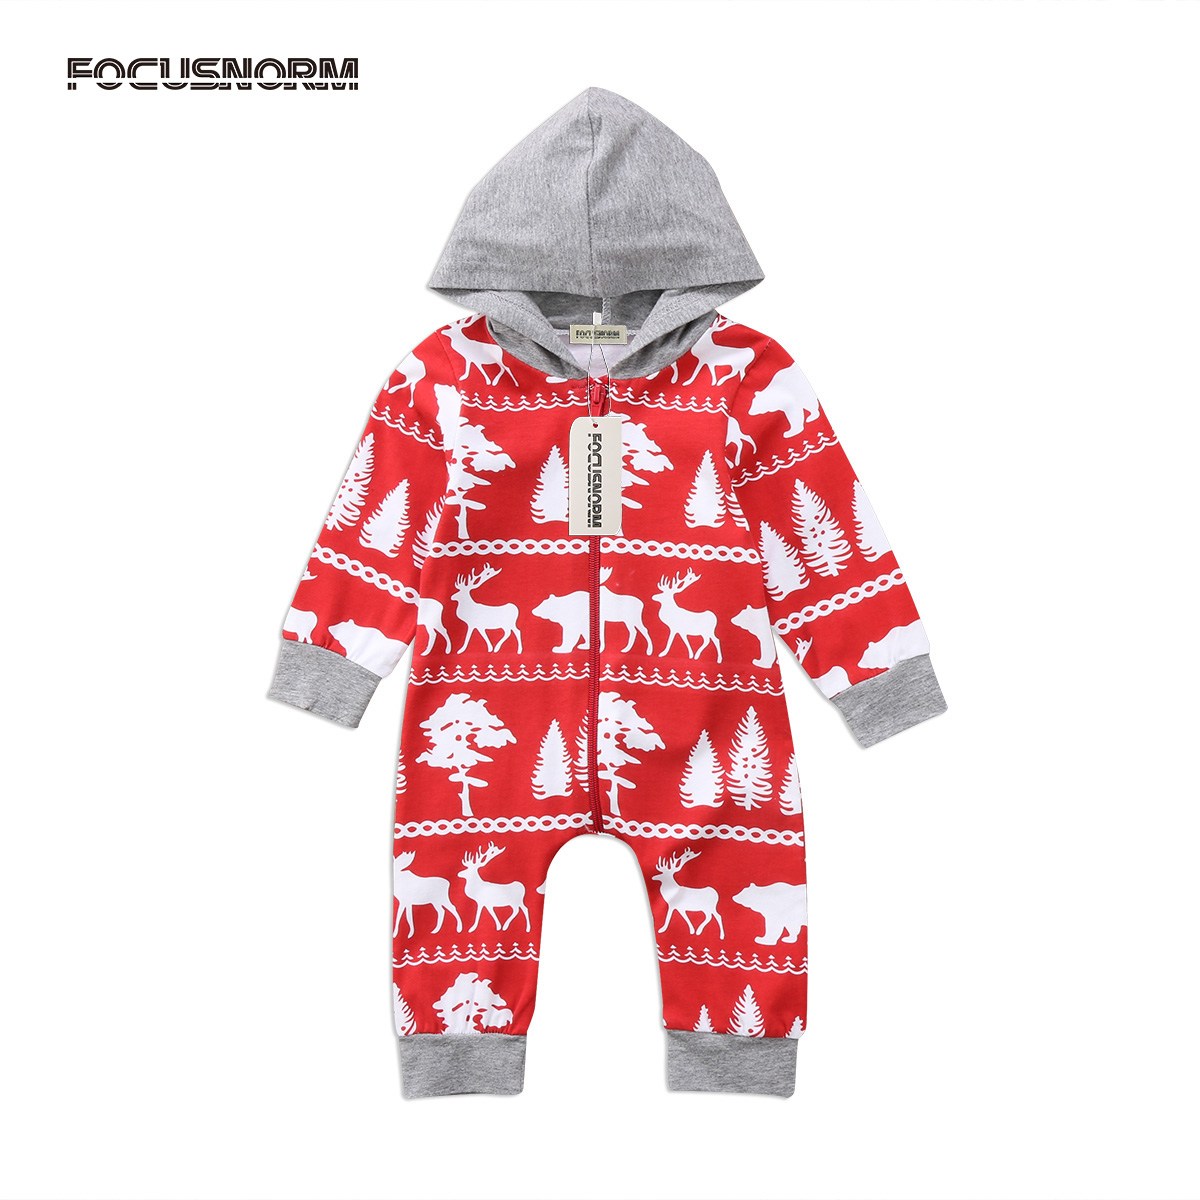 Newborn Baby Infant Boy Girl Christmas Deer Print Romper Hooded Zipper Jumpsuit Playsuit Outfits Cute Festival Clothes